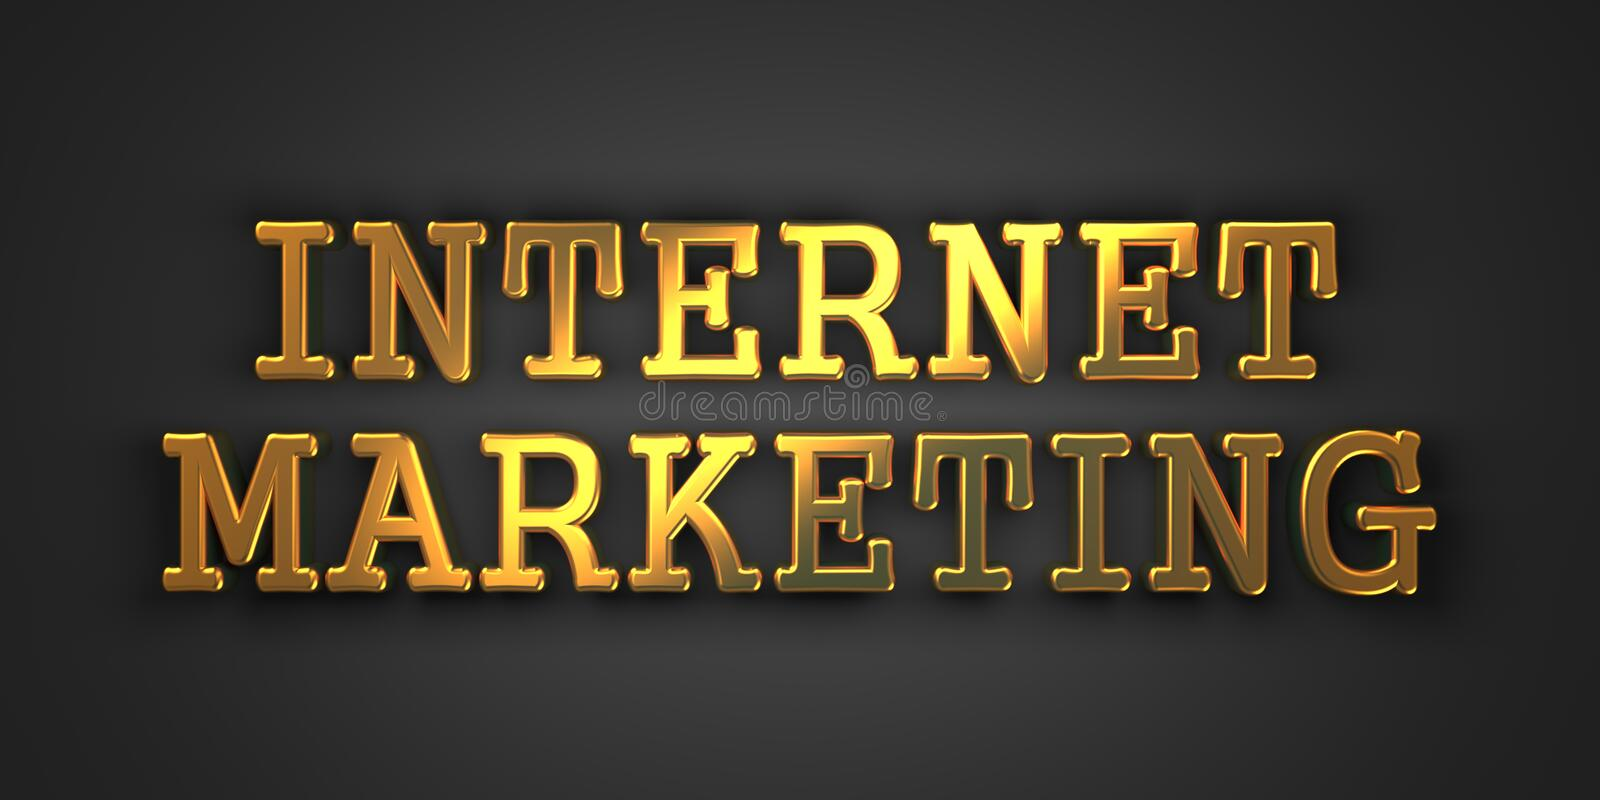 Download Internet Marketing. Business Concept. Stock Photo - Image: 32847326